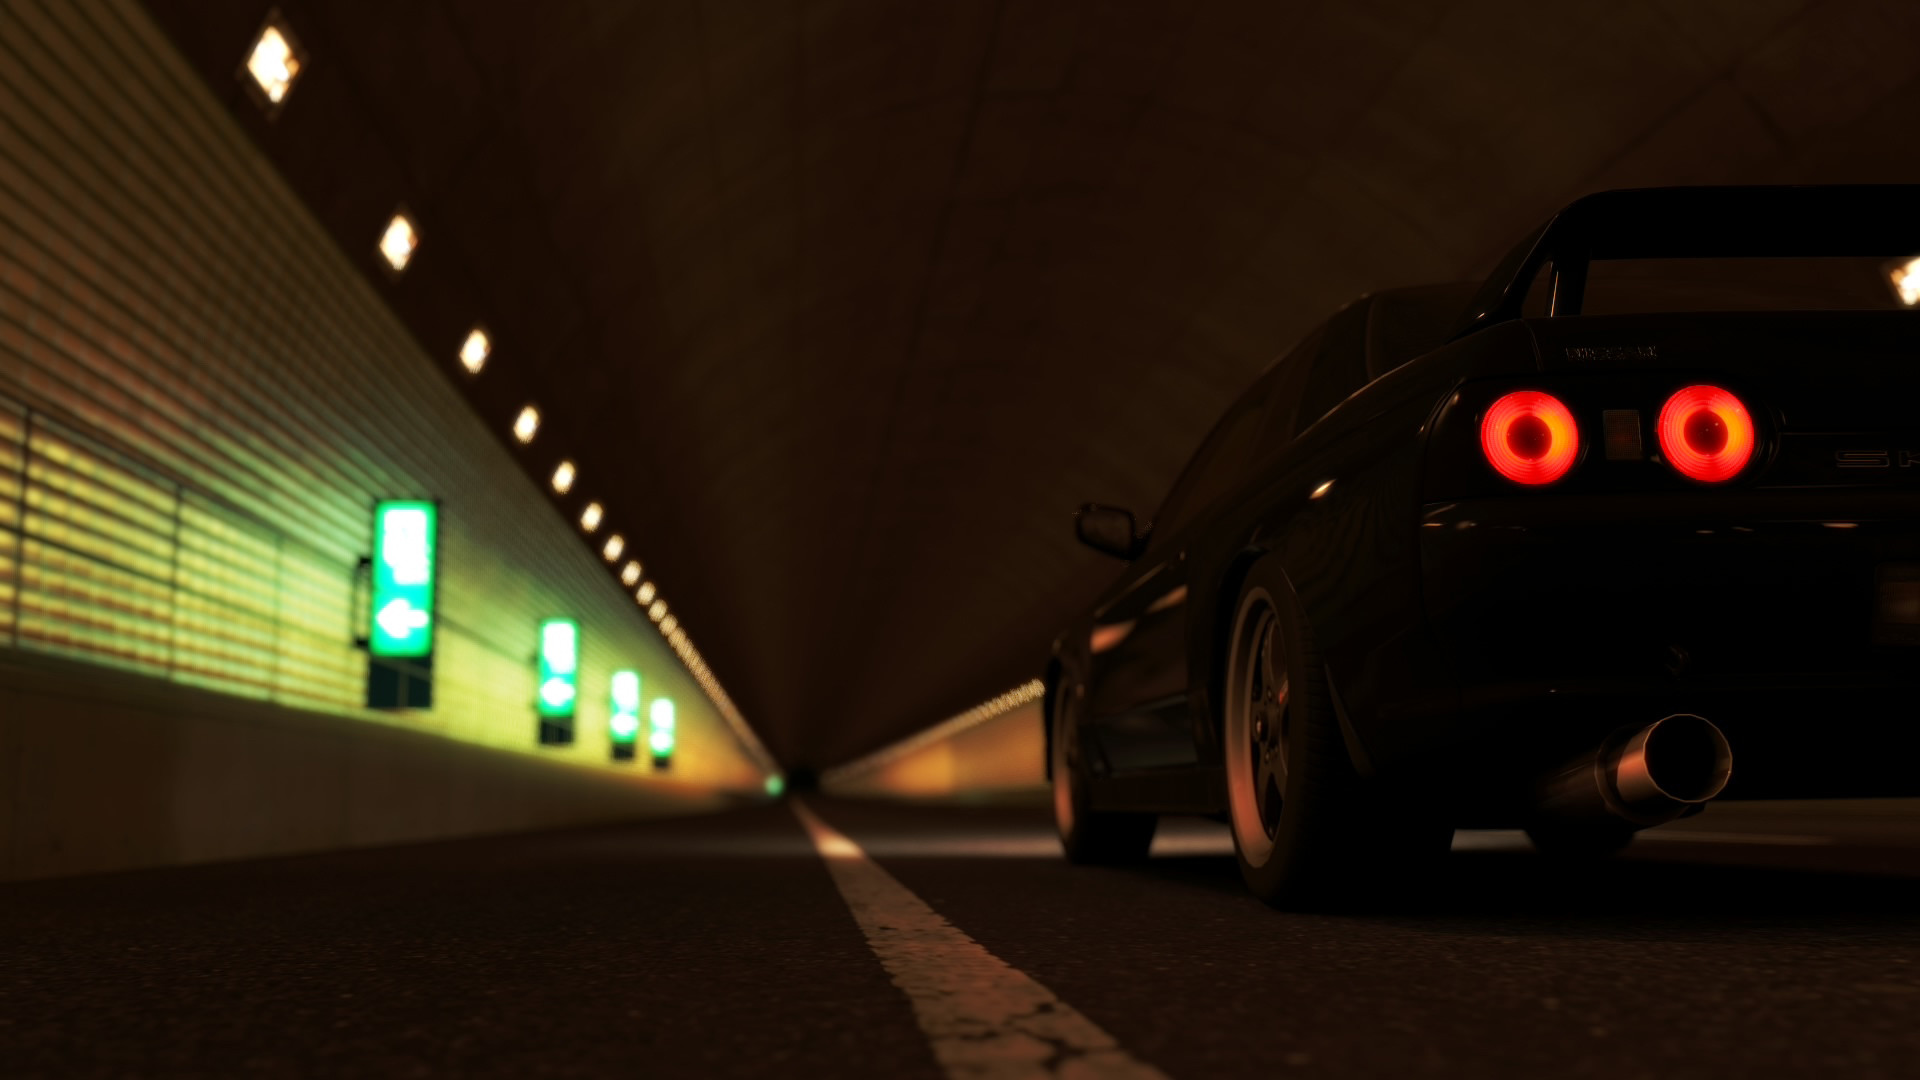 Skyline R32 Wallpaper 1 by ThunderBreak Skyline R32 Wallpaper 1 by  ThunderBreak